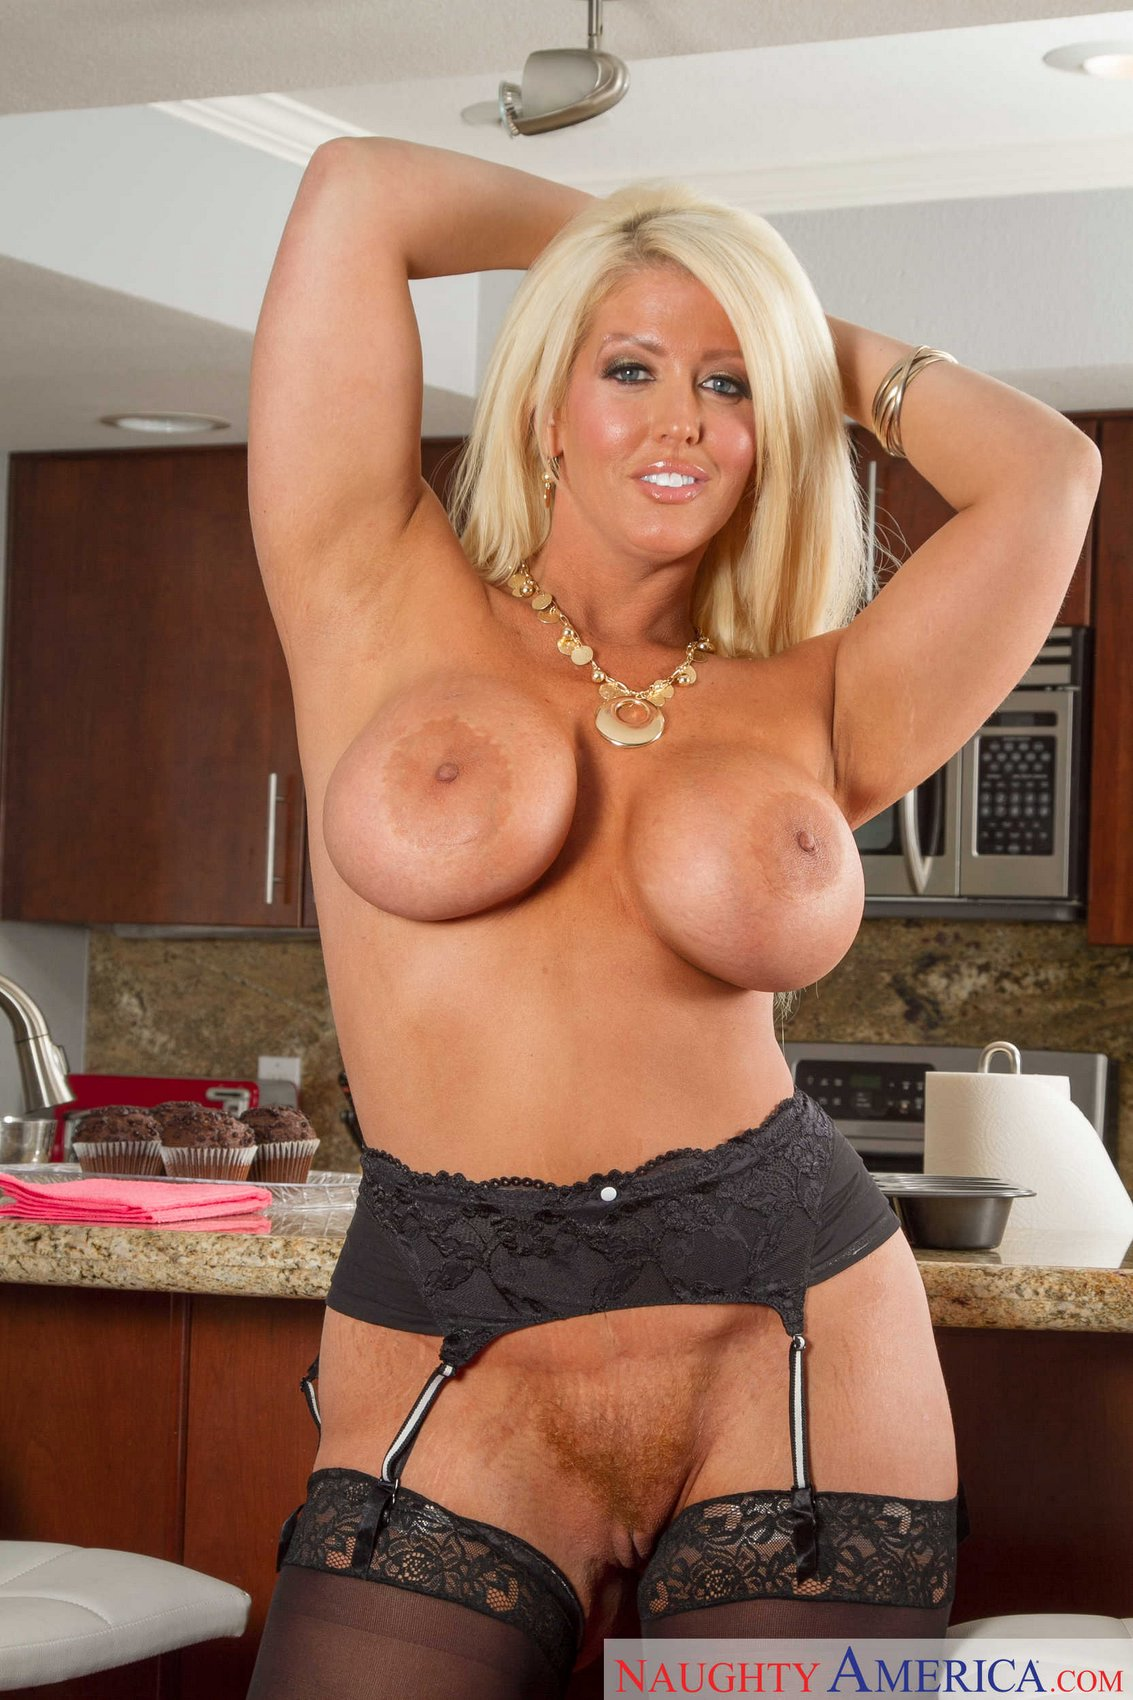 Agree, Milf stripping 2000 you have